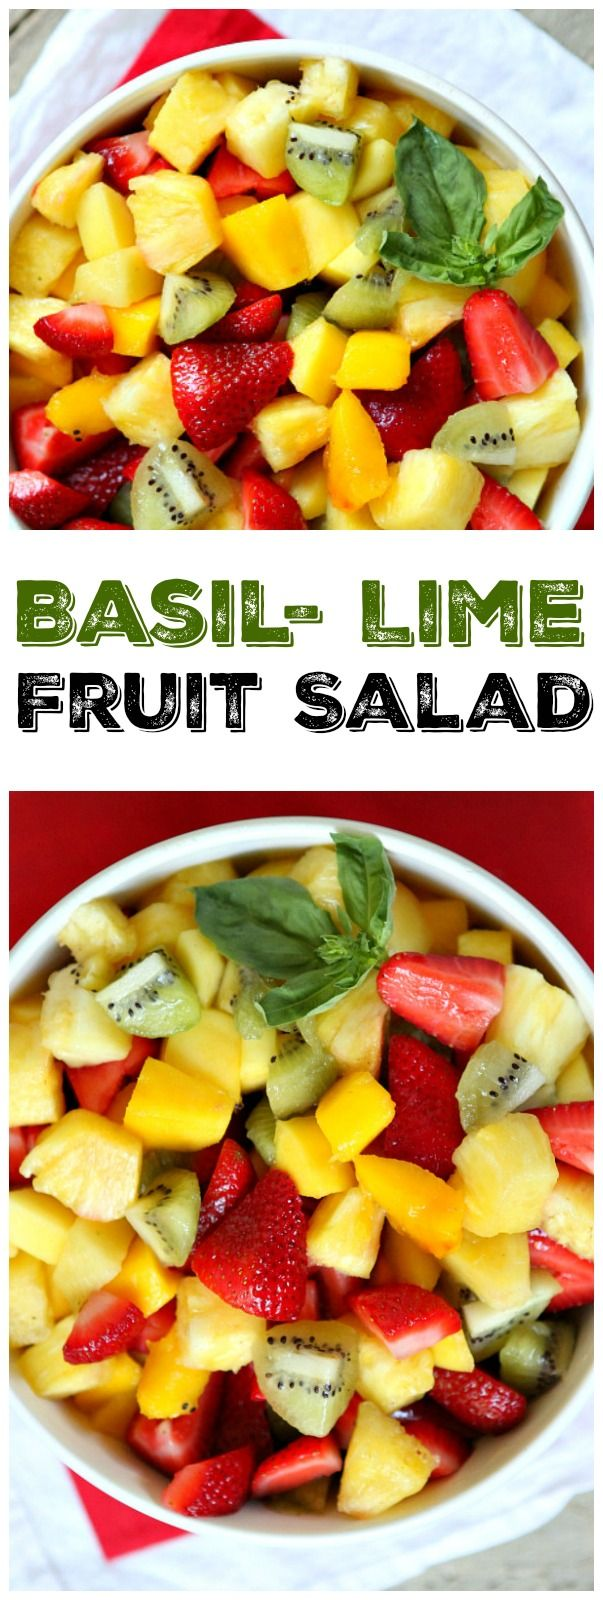 Easy recipe for Basil- Lime Fruit Salad : a fresh fruit salad tossed with a basil-lime infused simple syrup.